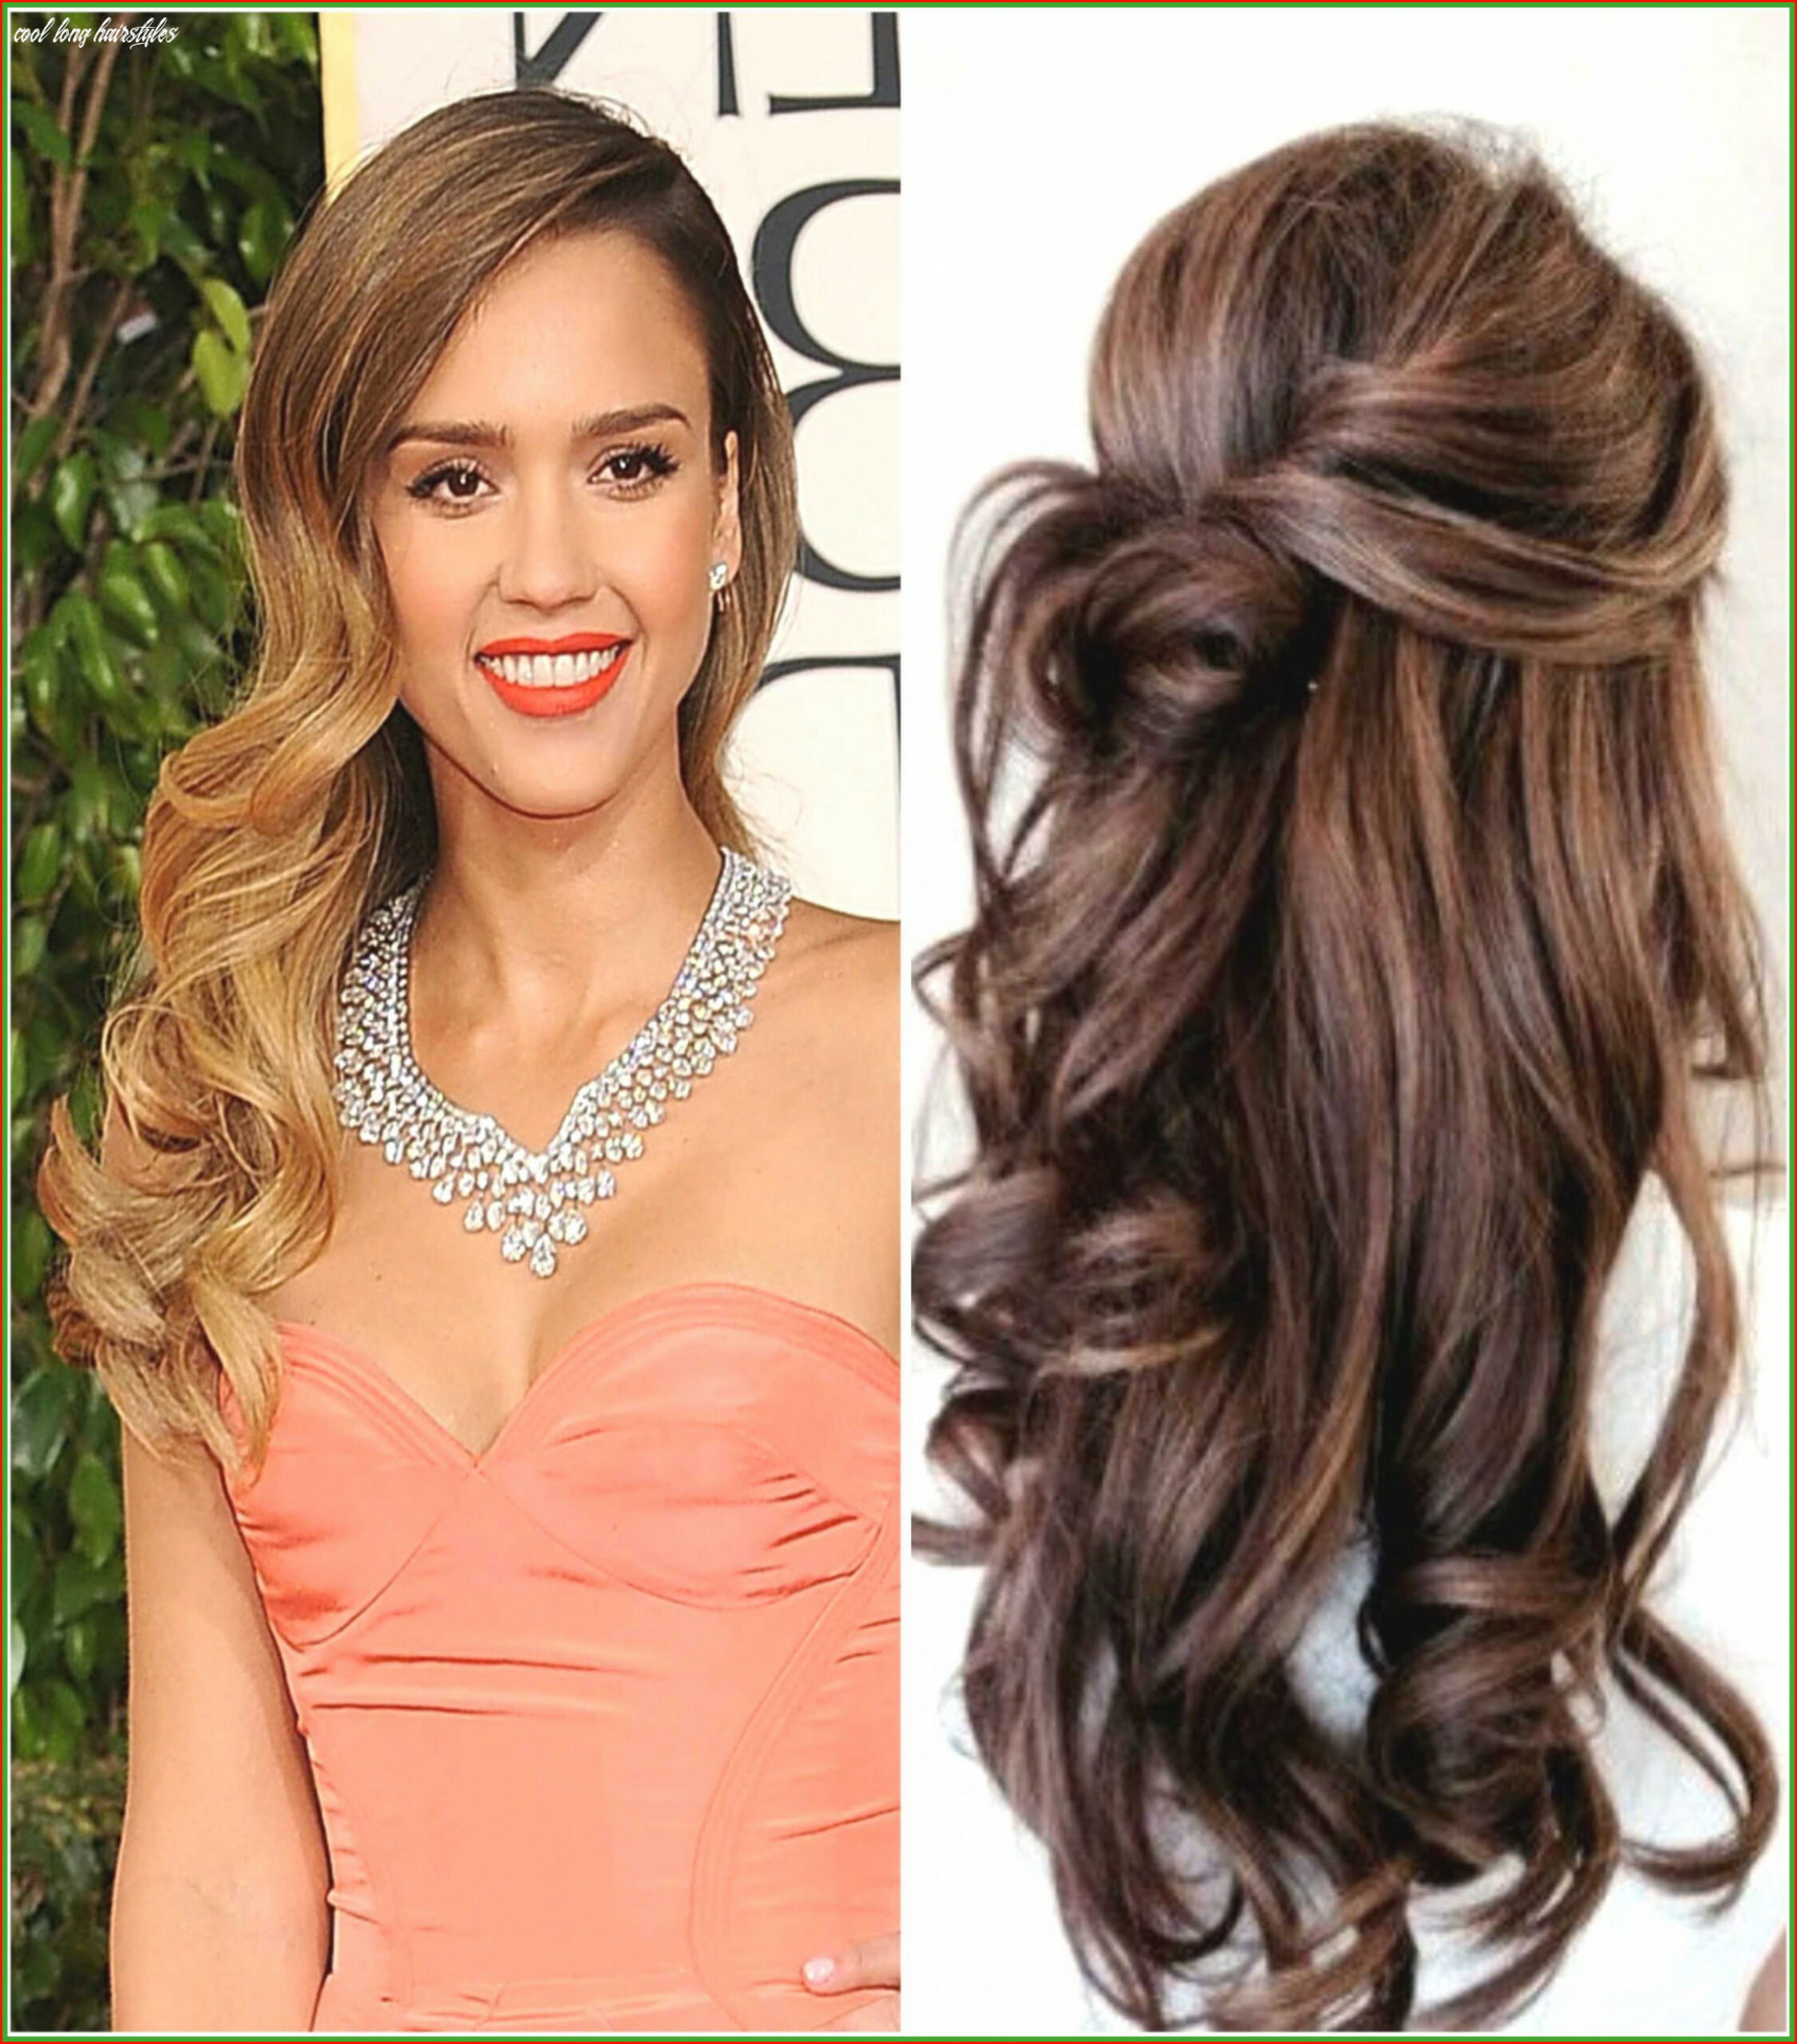 Cool long hair hairstyles for women gallery of long hairstyles